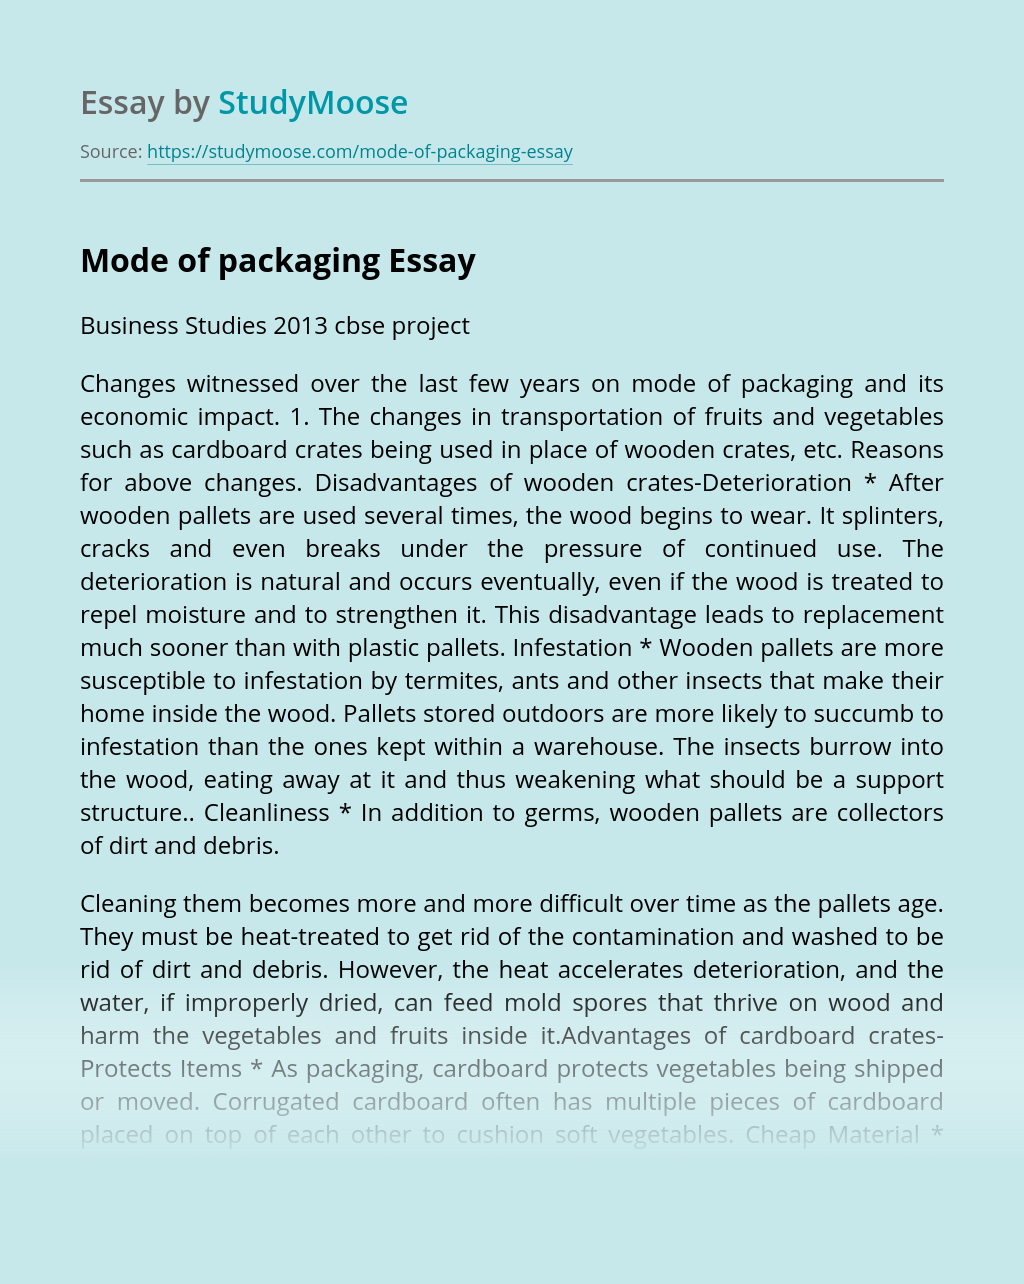 Mode of packaging